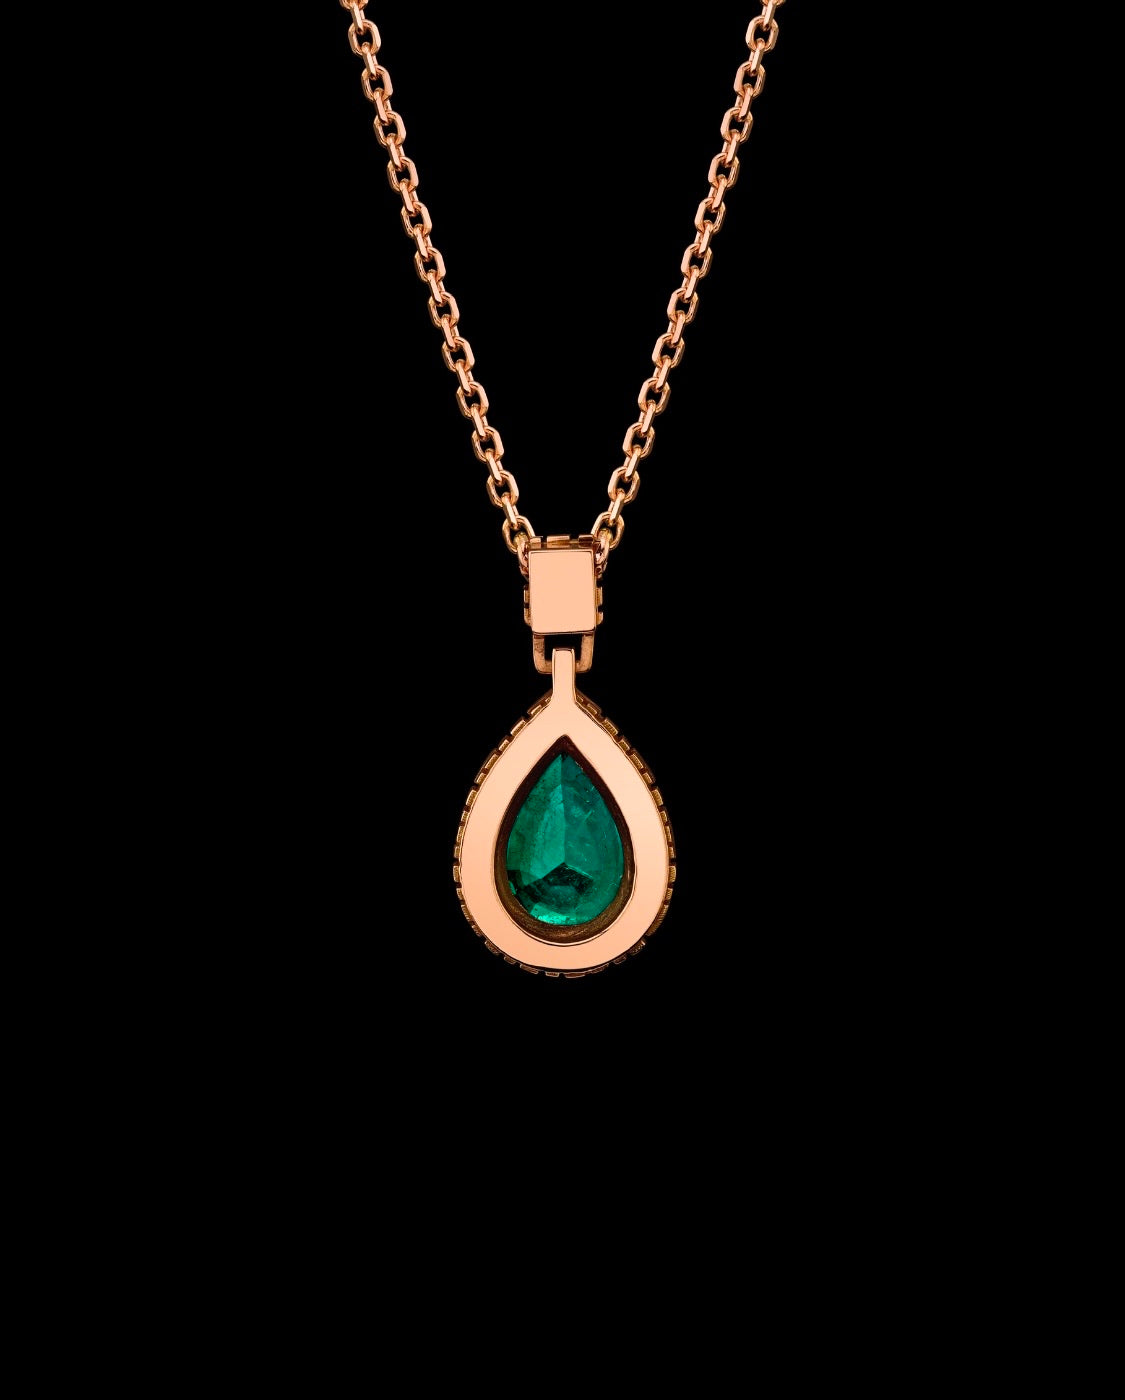 Metal Noir Natural Pear Shaped Emerald and Diamond Necklace